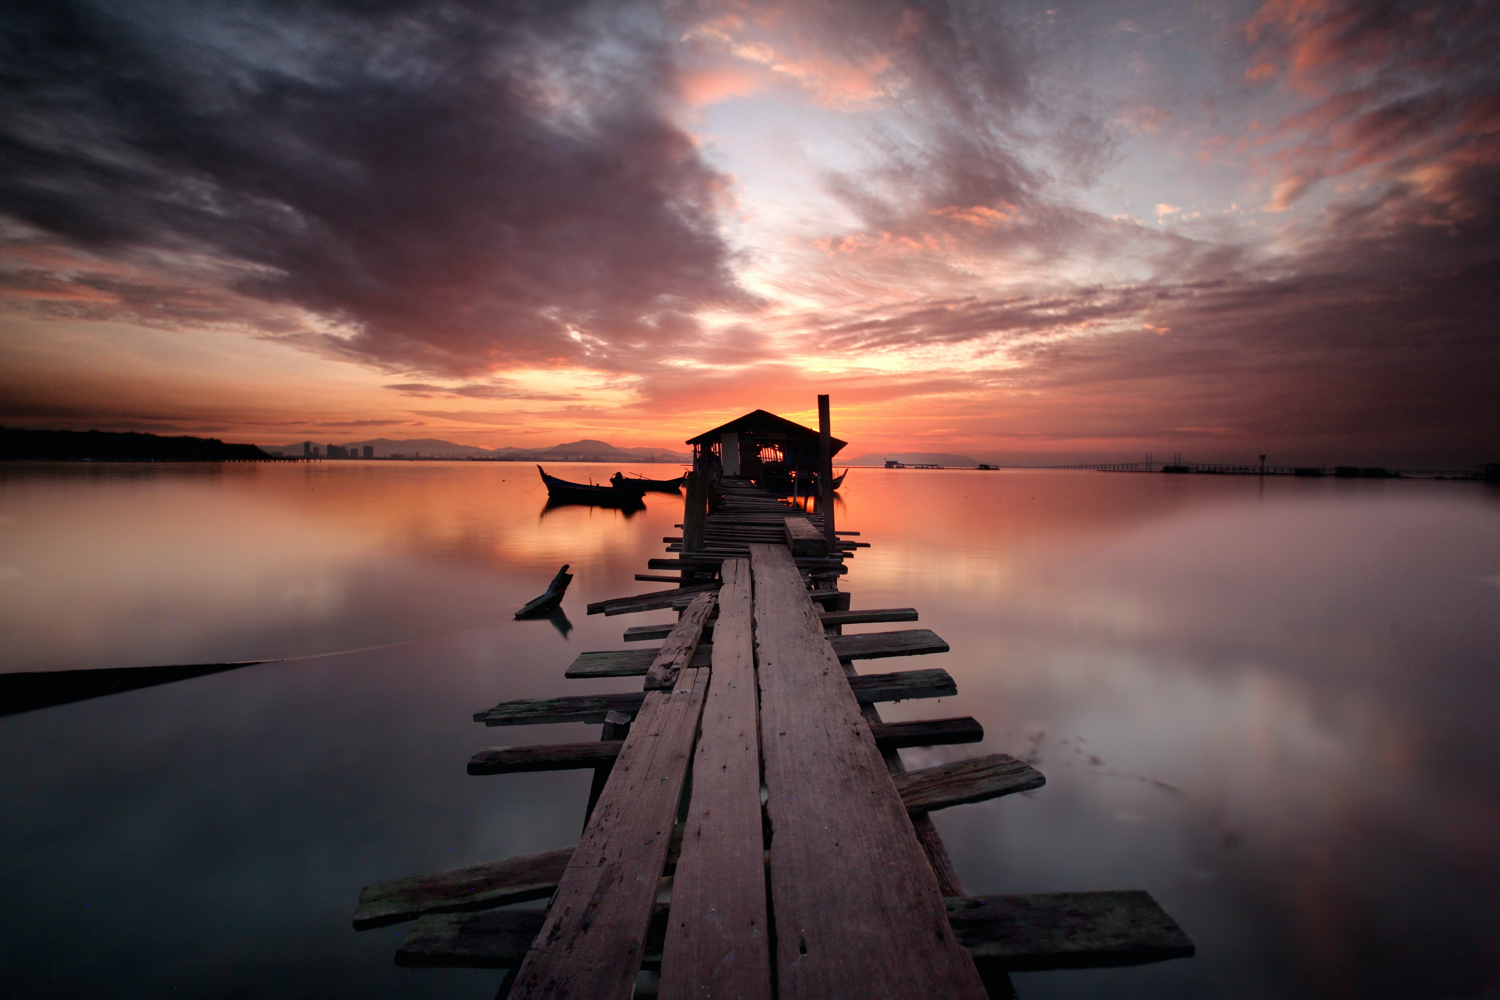 filters for long exposure landscapes - jetty over the water at sunset